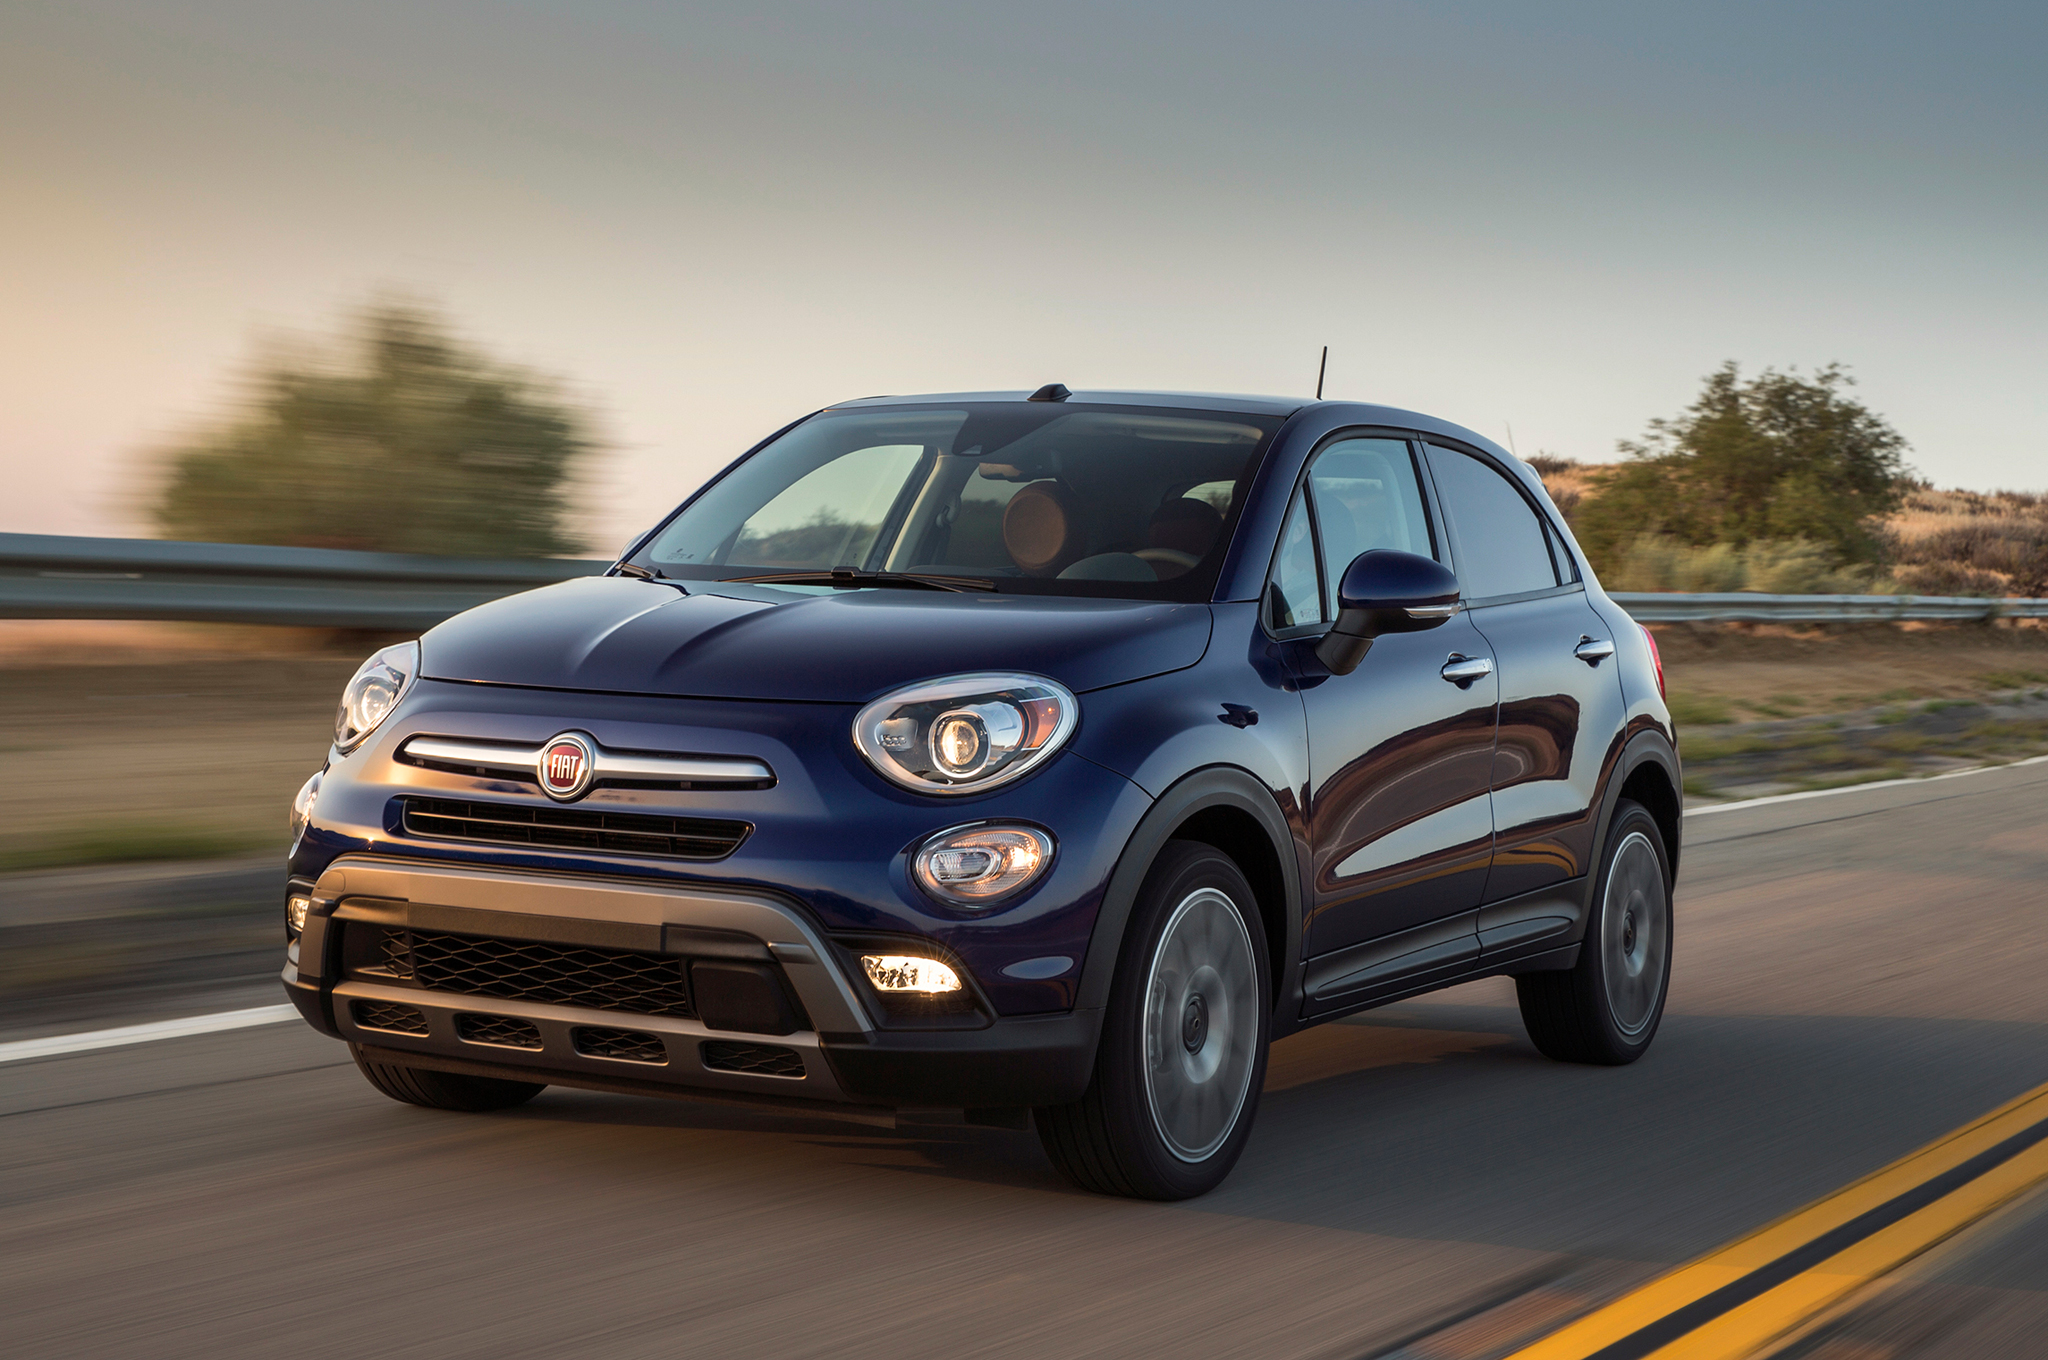 Fiat 500 X Blue Color Car On Road Full Uhd Wallpaper